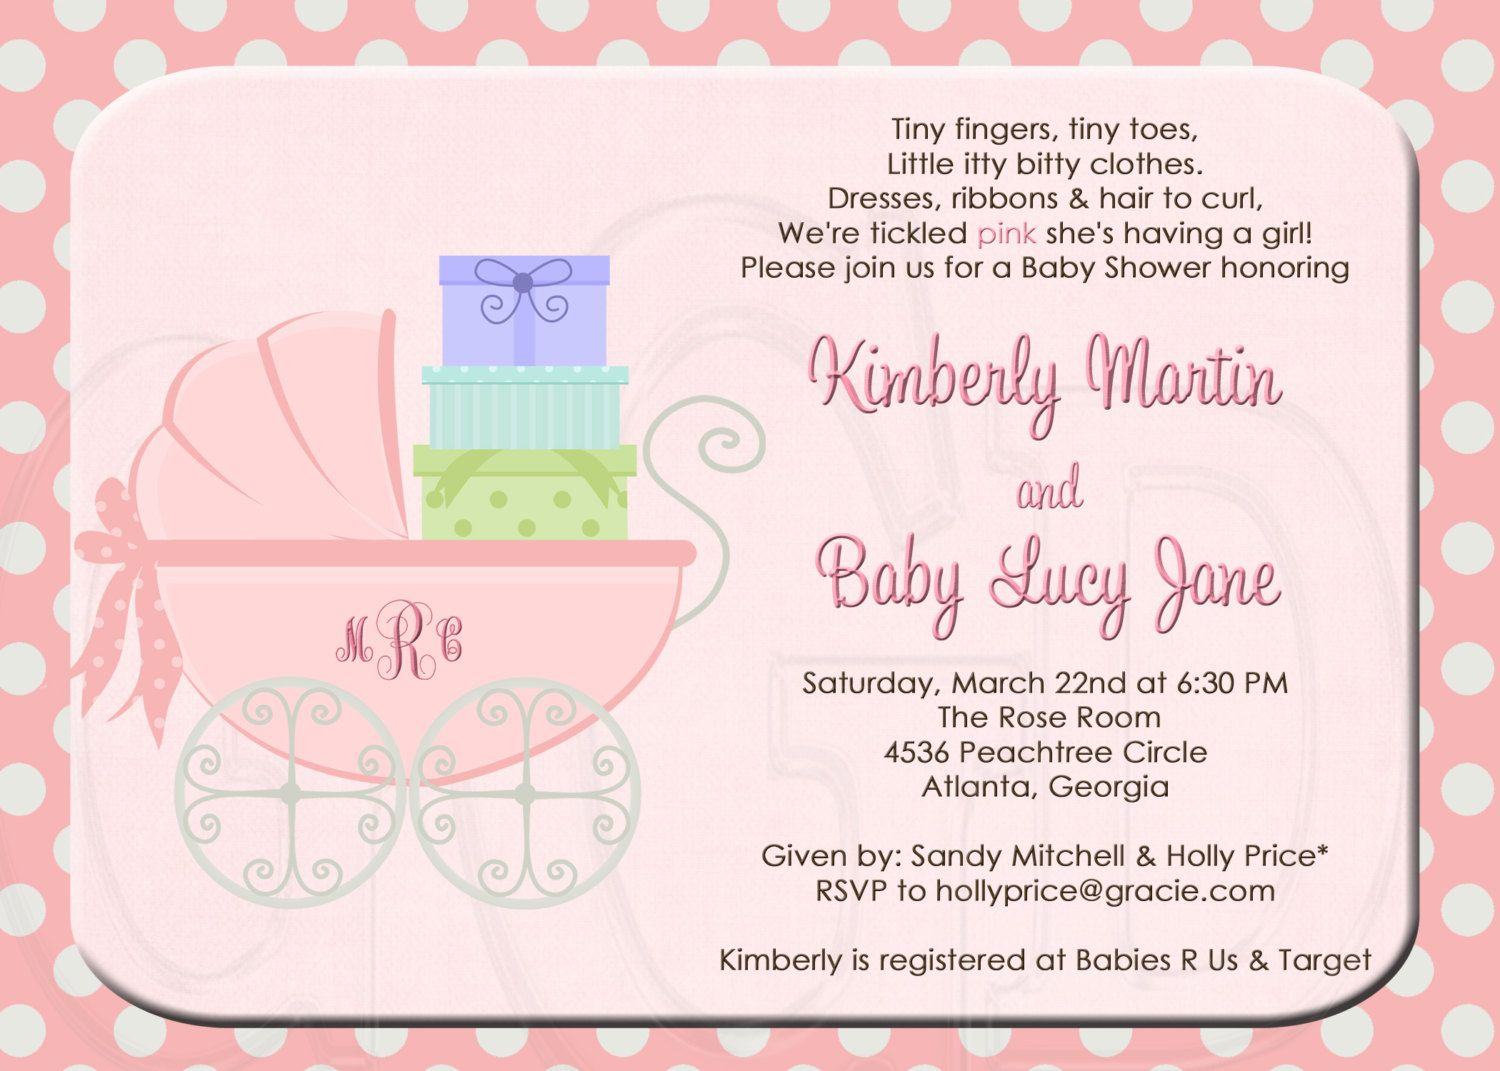 Create Baby Shower Invitation Wording Free Templates | Invitstiond ...